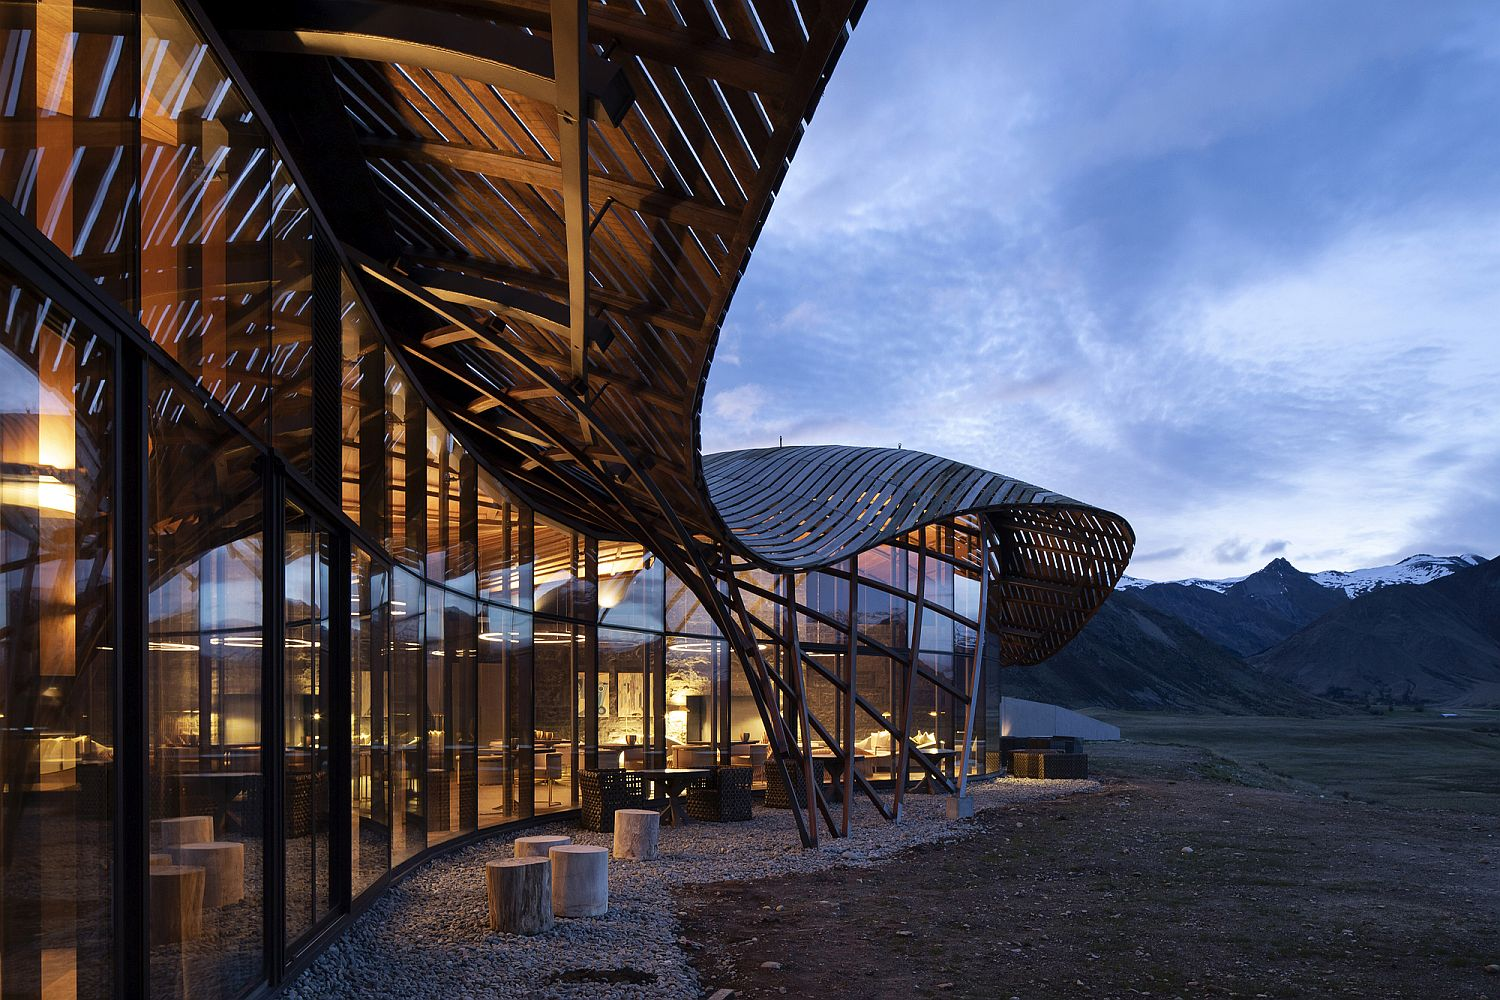 Wavy and unique roof form of the lodge inspired by glacial moraines